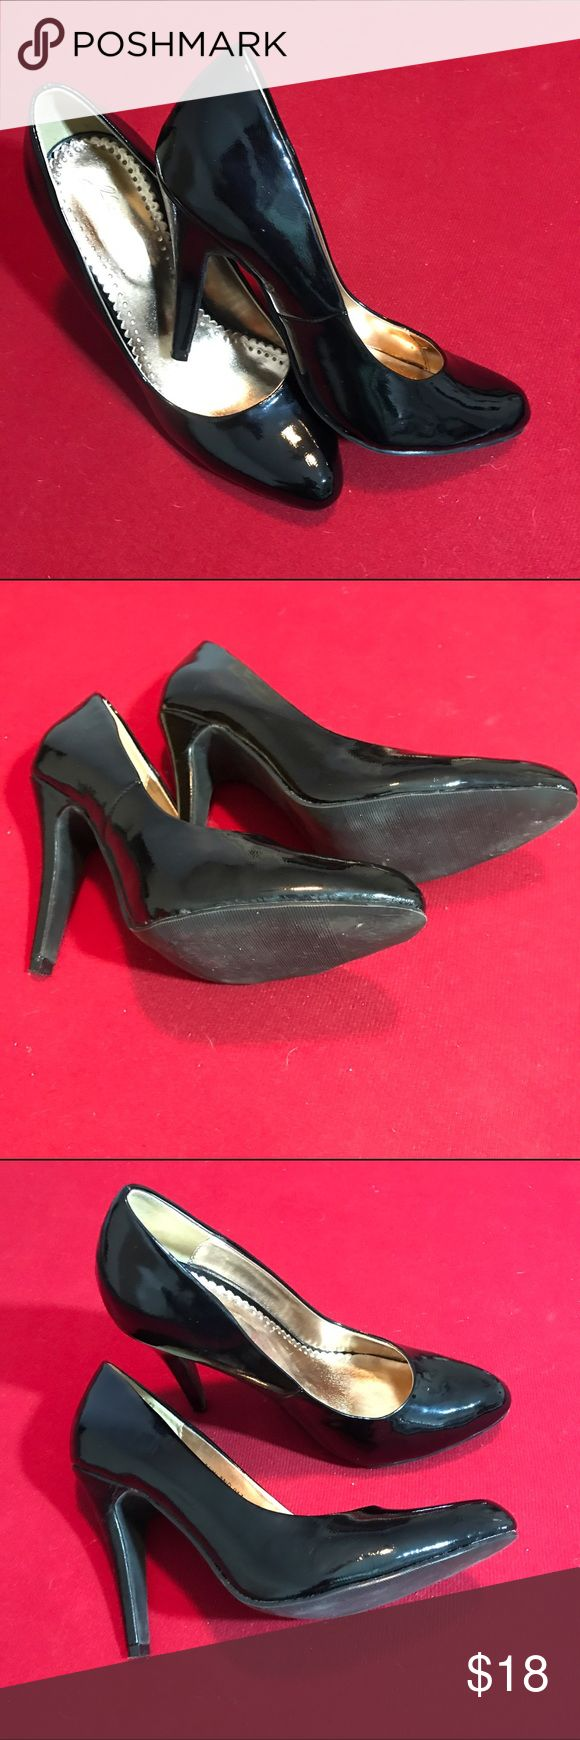 "Classic patent leather pump Shiny patent leather black pump. 4"" heel is too high for me. Look new. Classic shoe. Shoes Heels"